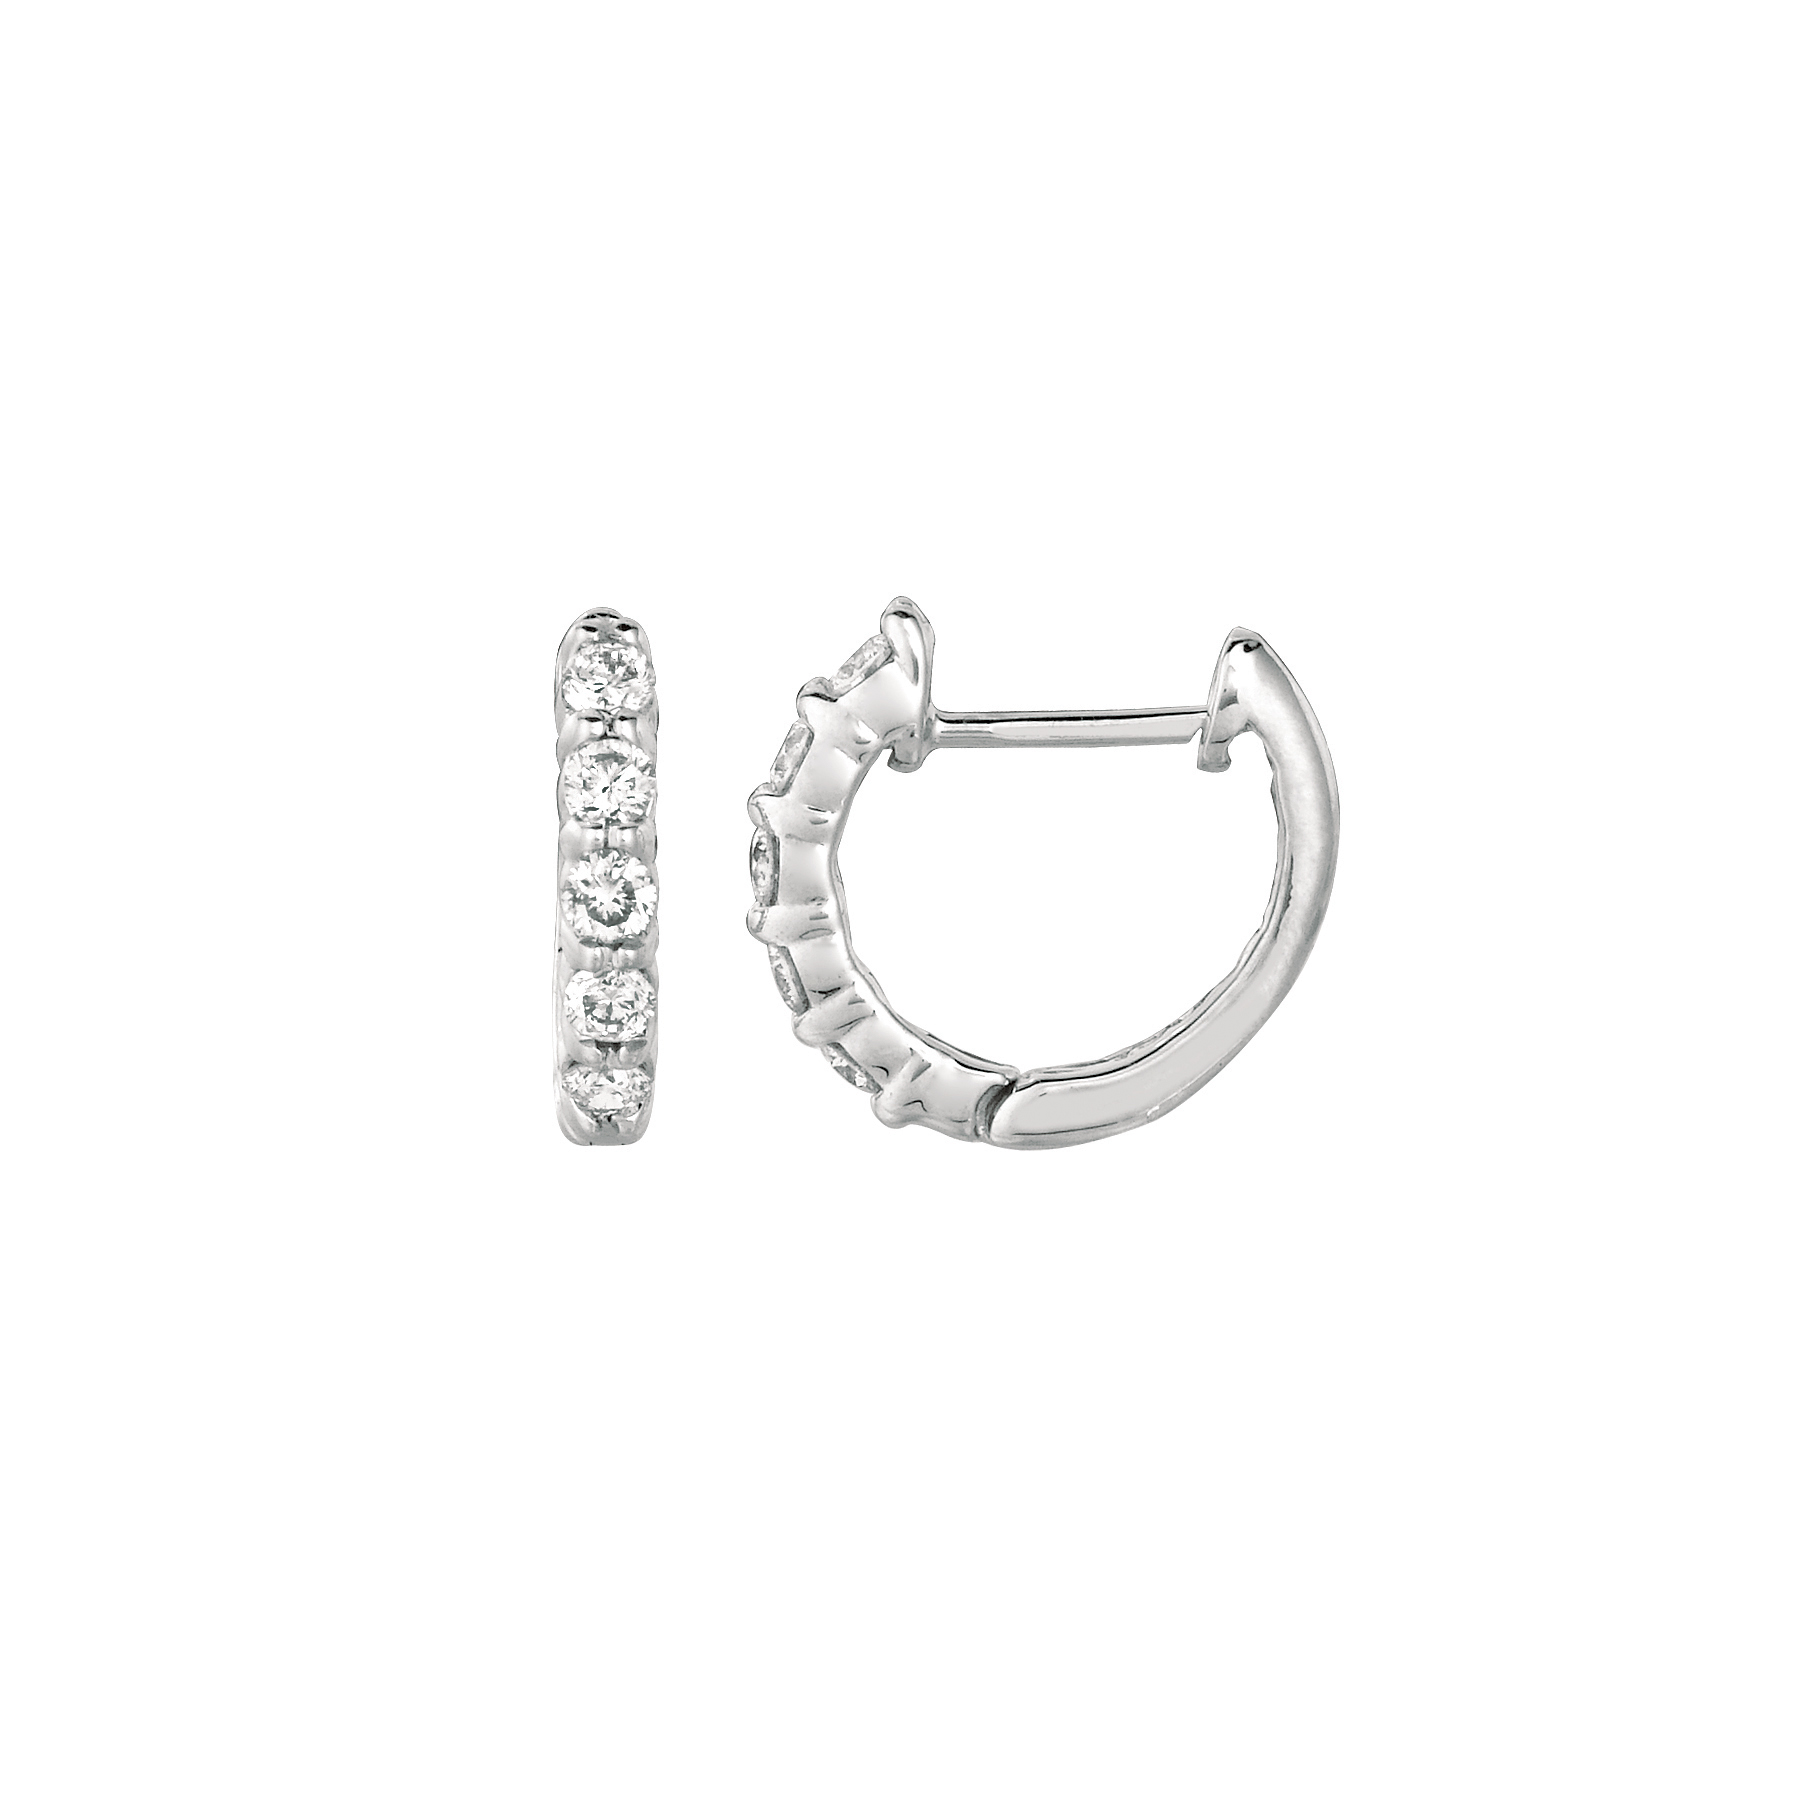 0 33 ct G H SI2 Diamond hoop earrings Set In 14K White Gold E5281 33W